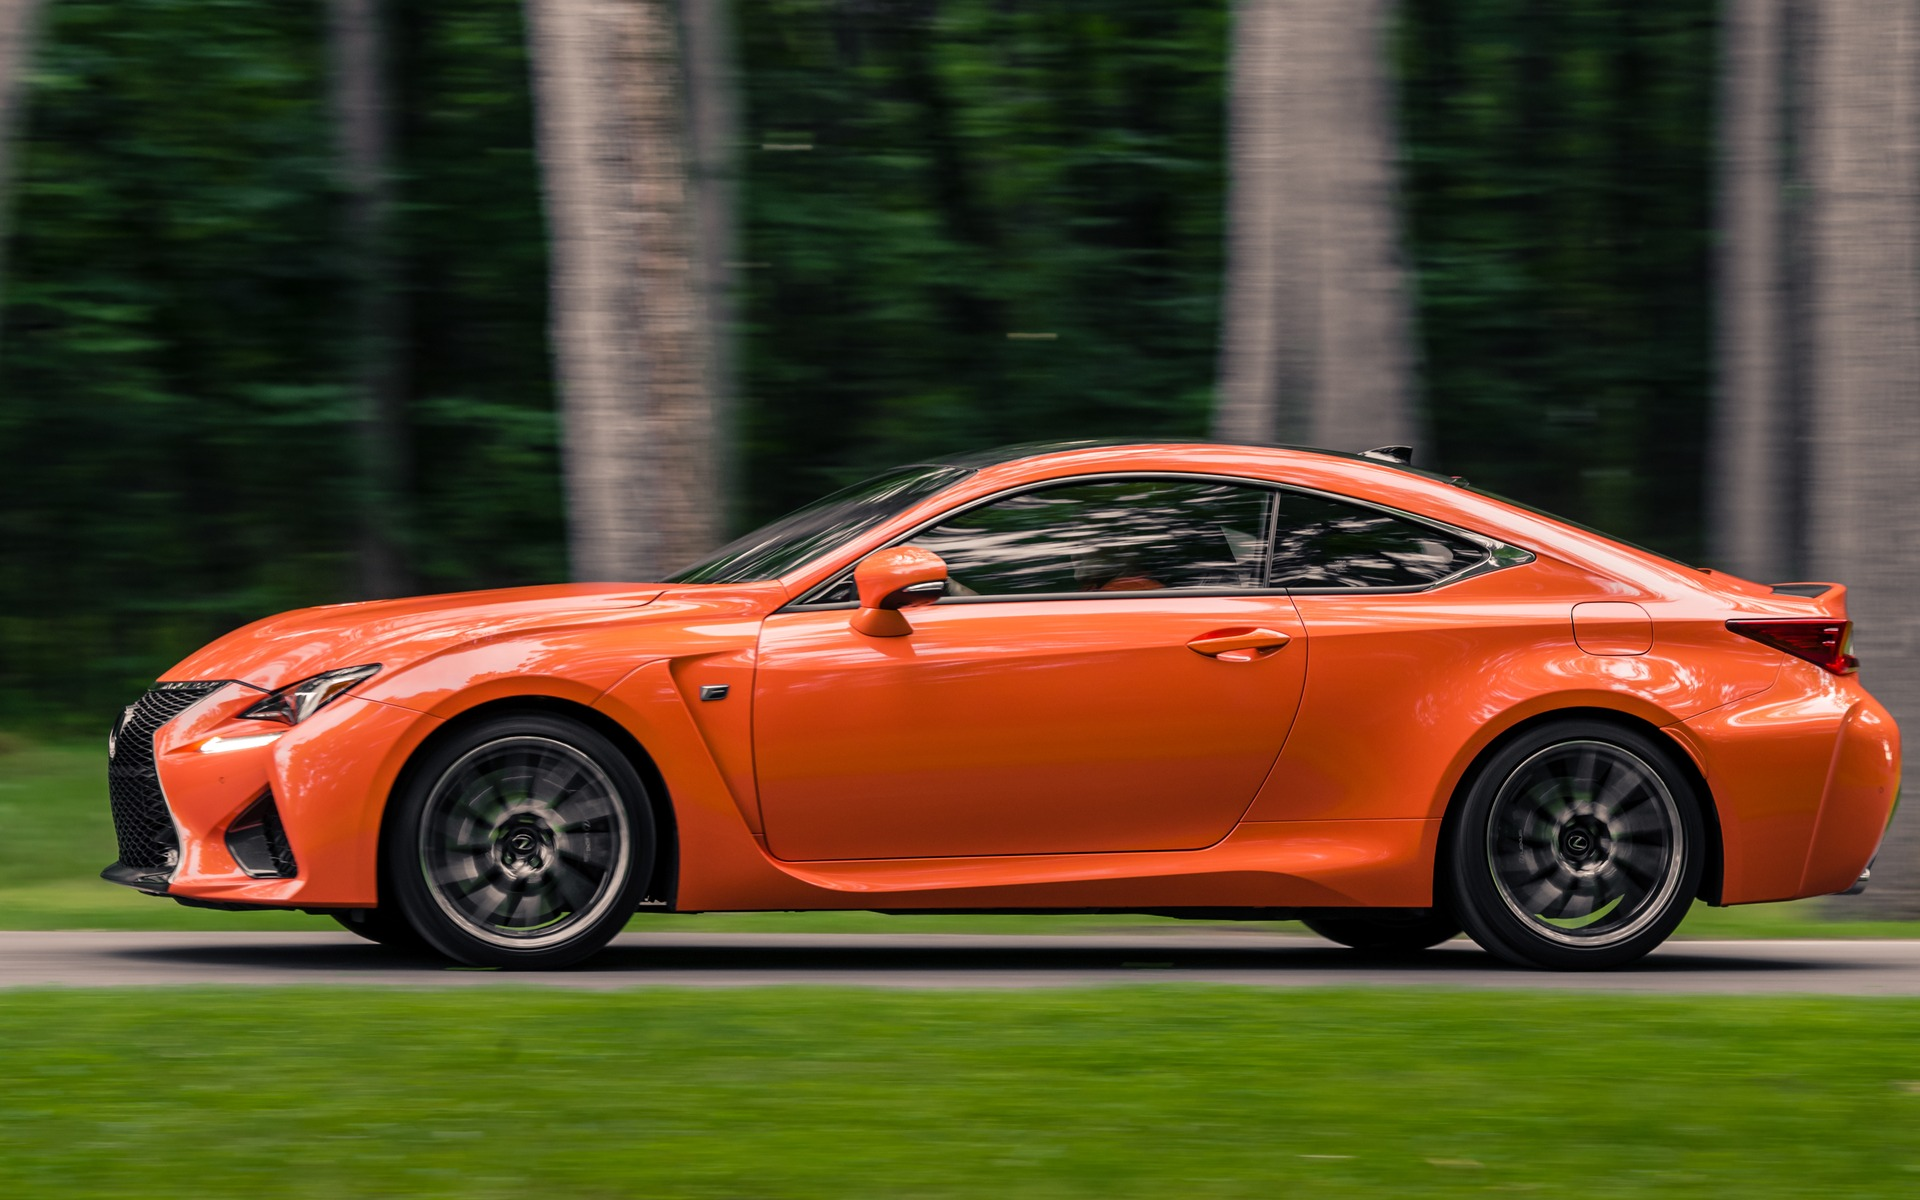 Lexus rc f 2015 la belle a ses d fauts guide auto for Garage la belle auto